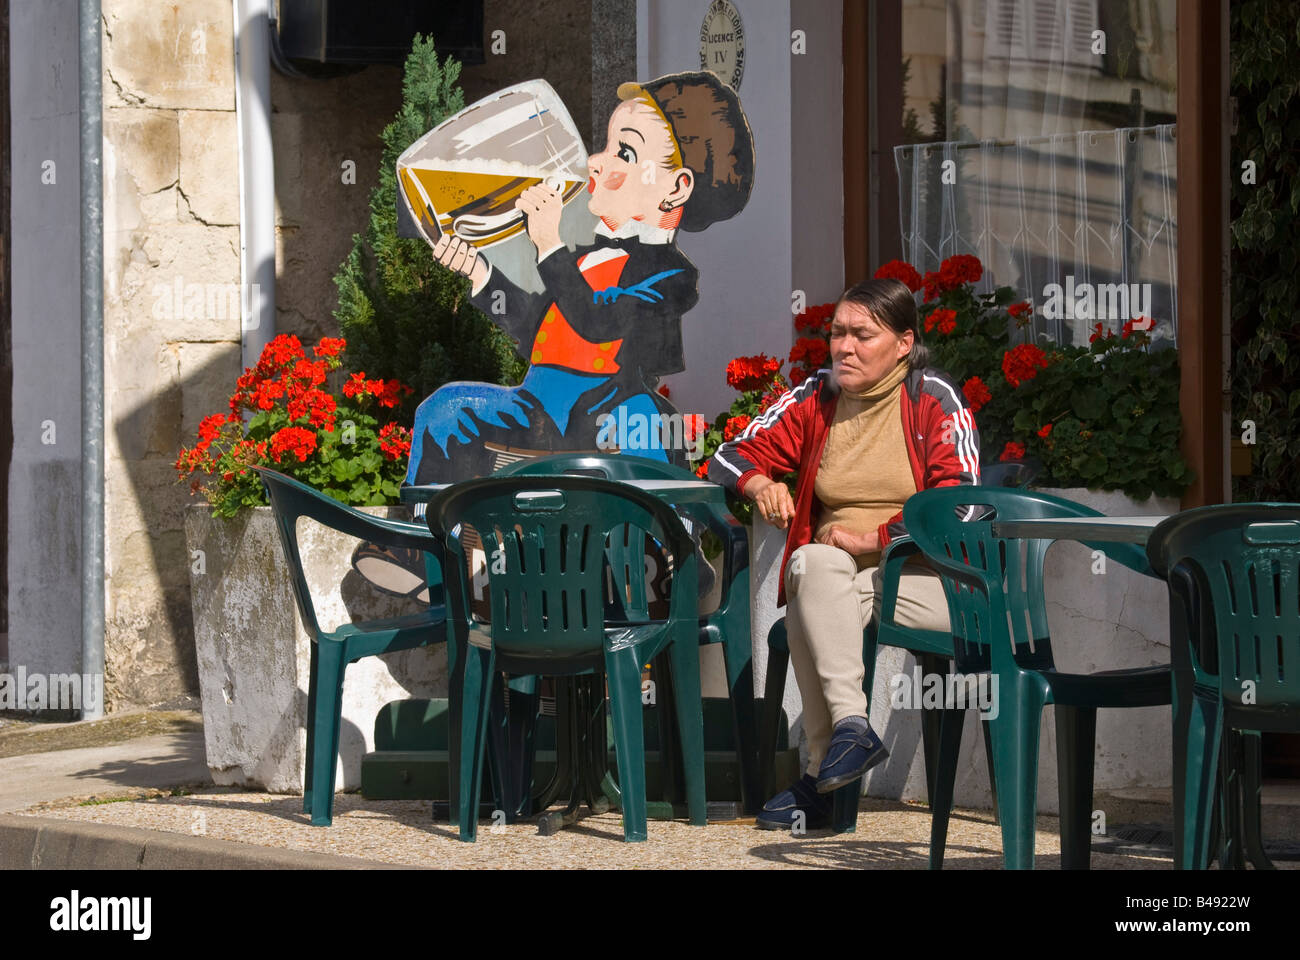 Woman smoking outside French bar, sud-Touraine, France. - Stock Image